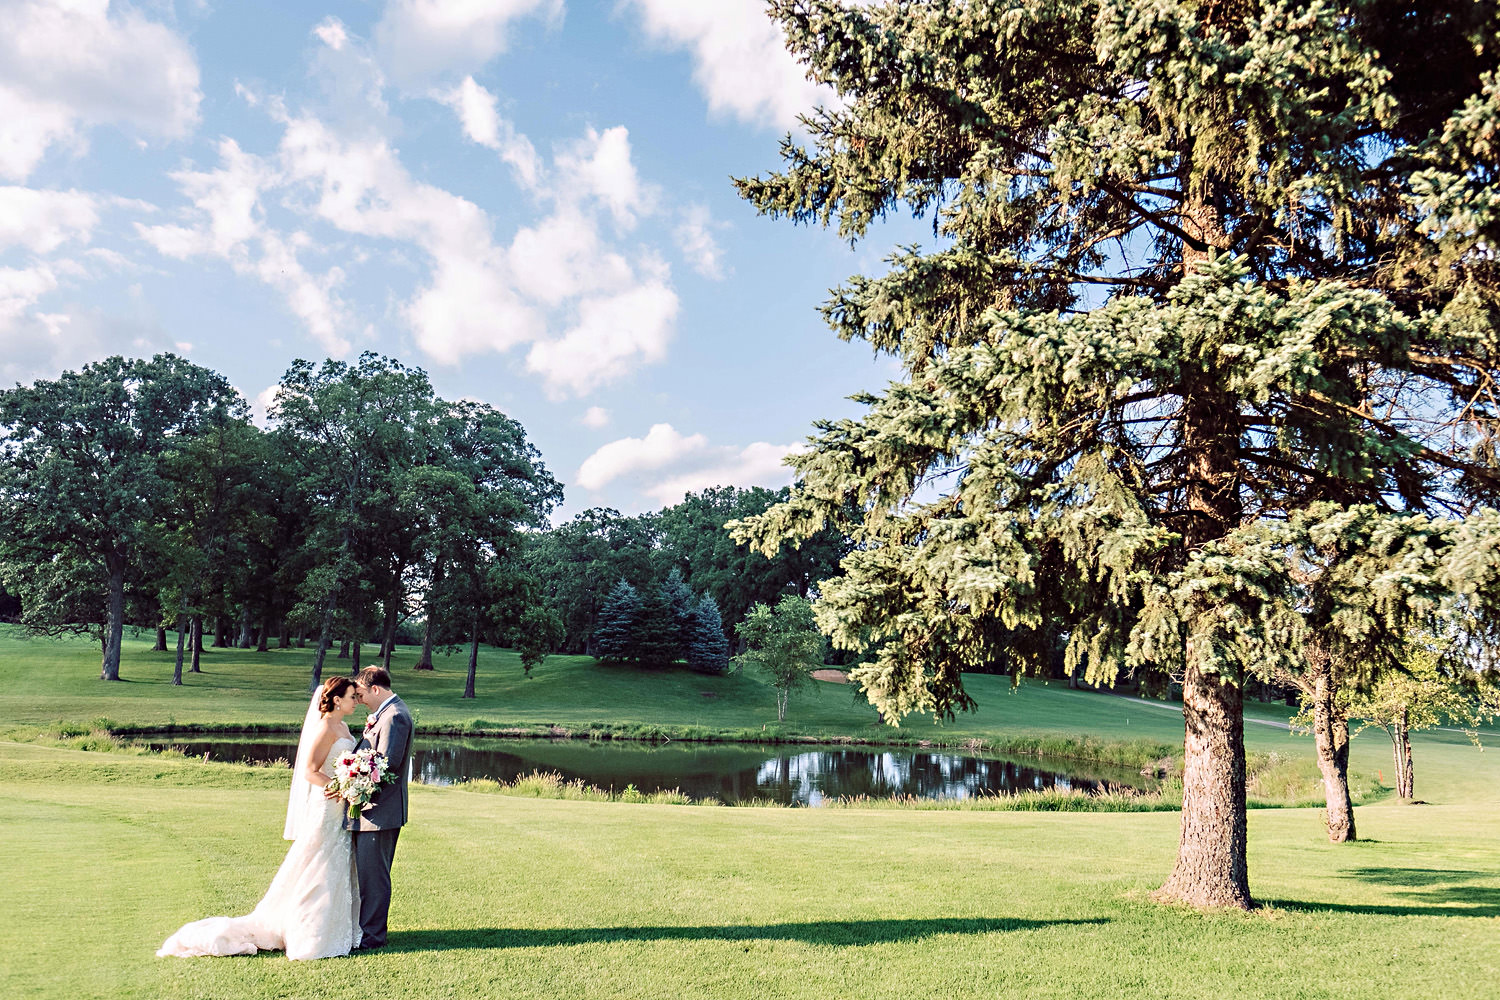 A bride and groom portrait on a golf course